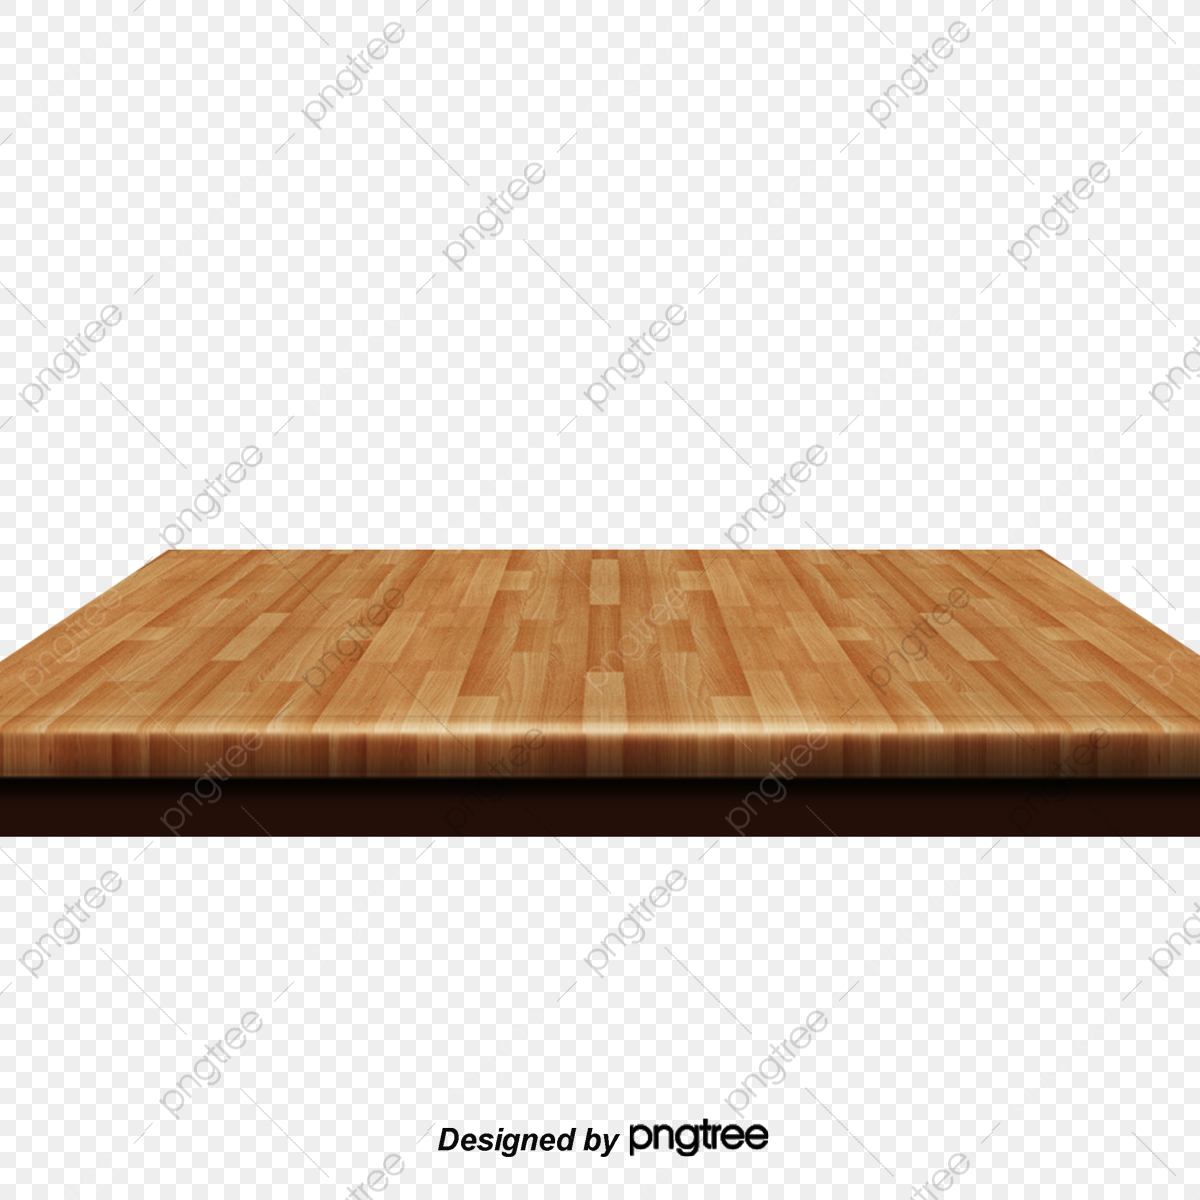 Hd Wood Floor, Home, Decoration, Wood PNG Transparent Clipart Image.